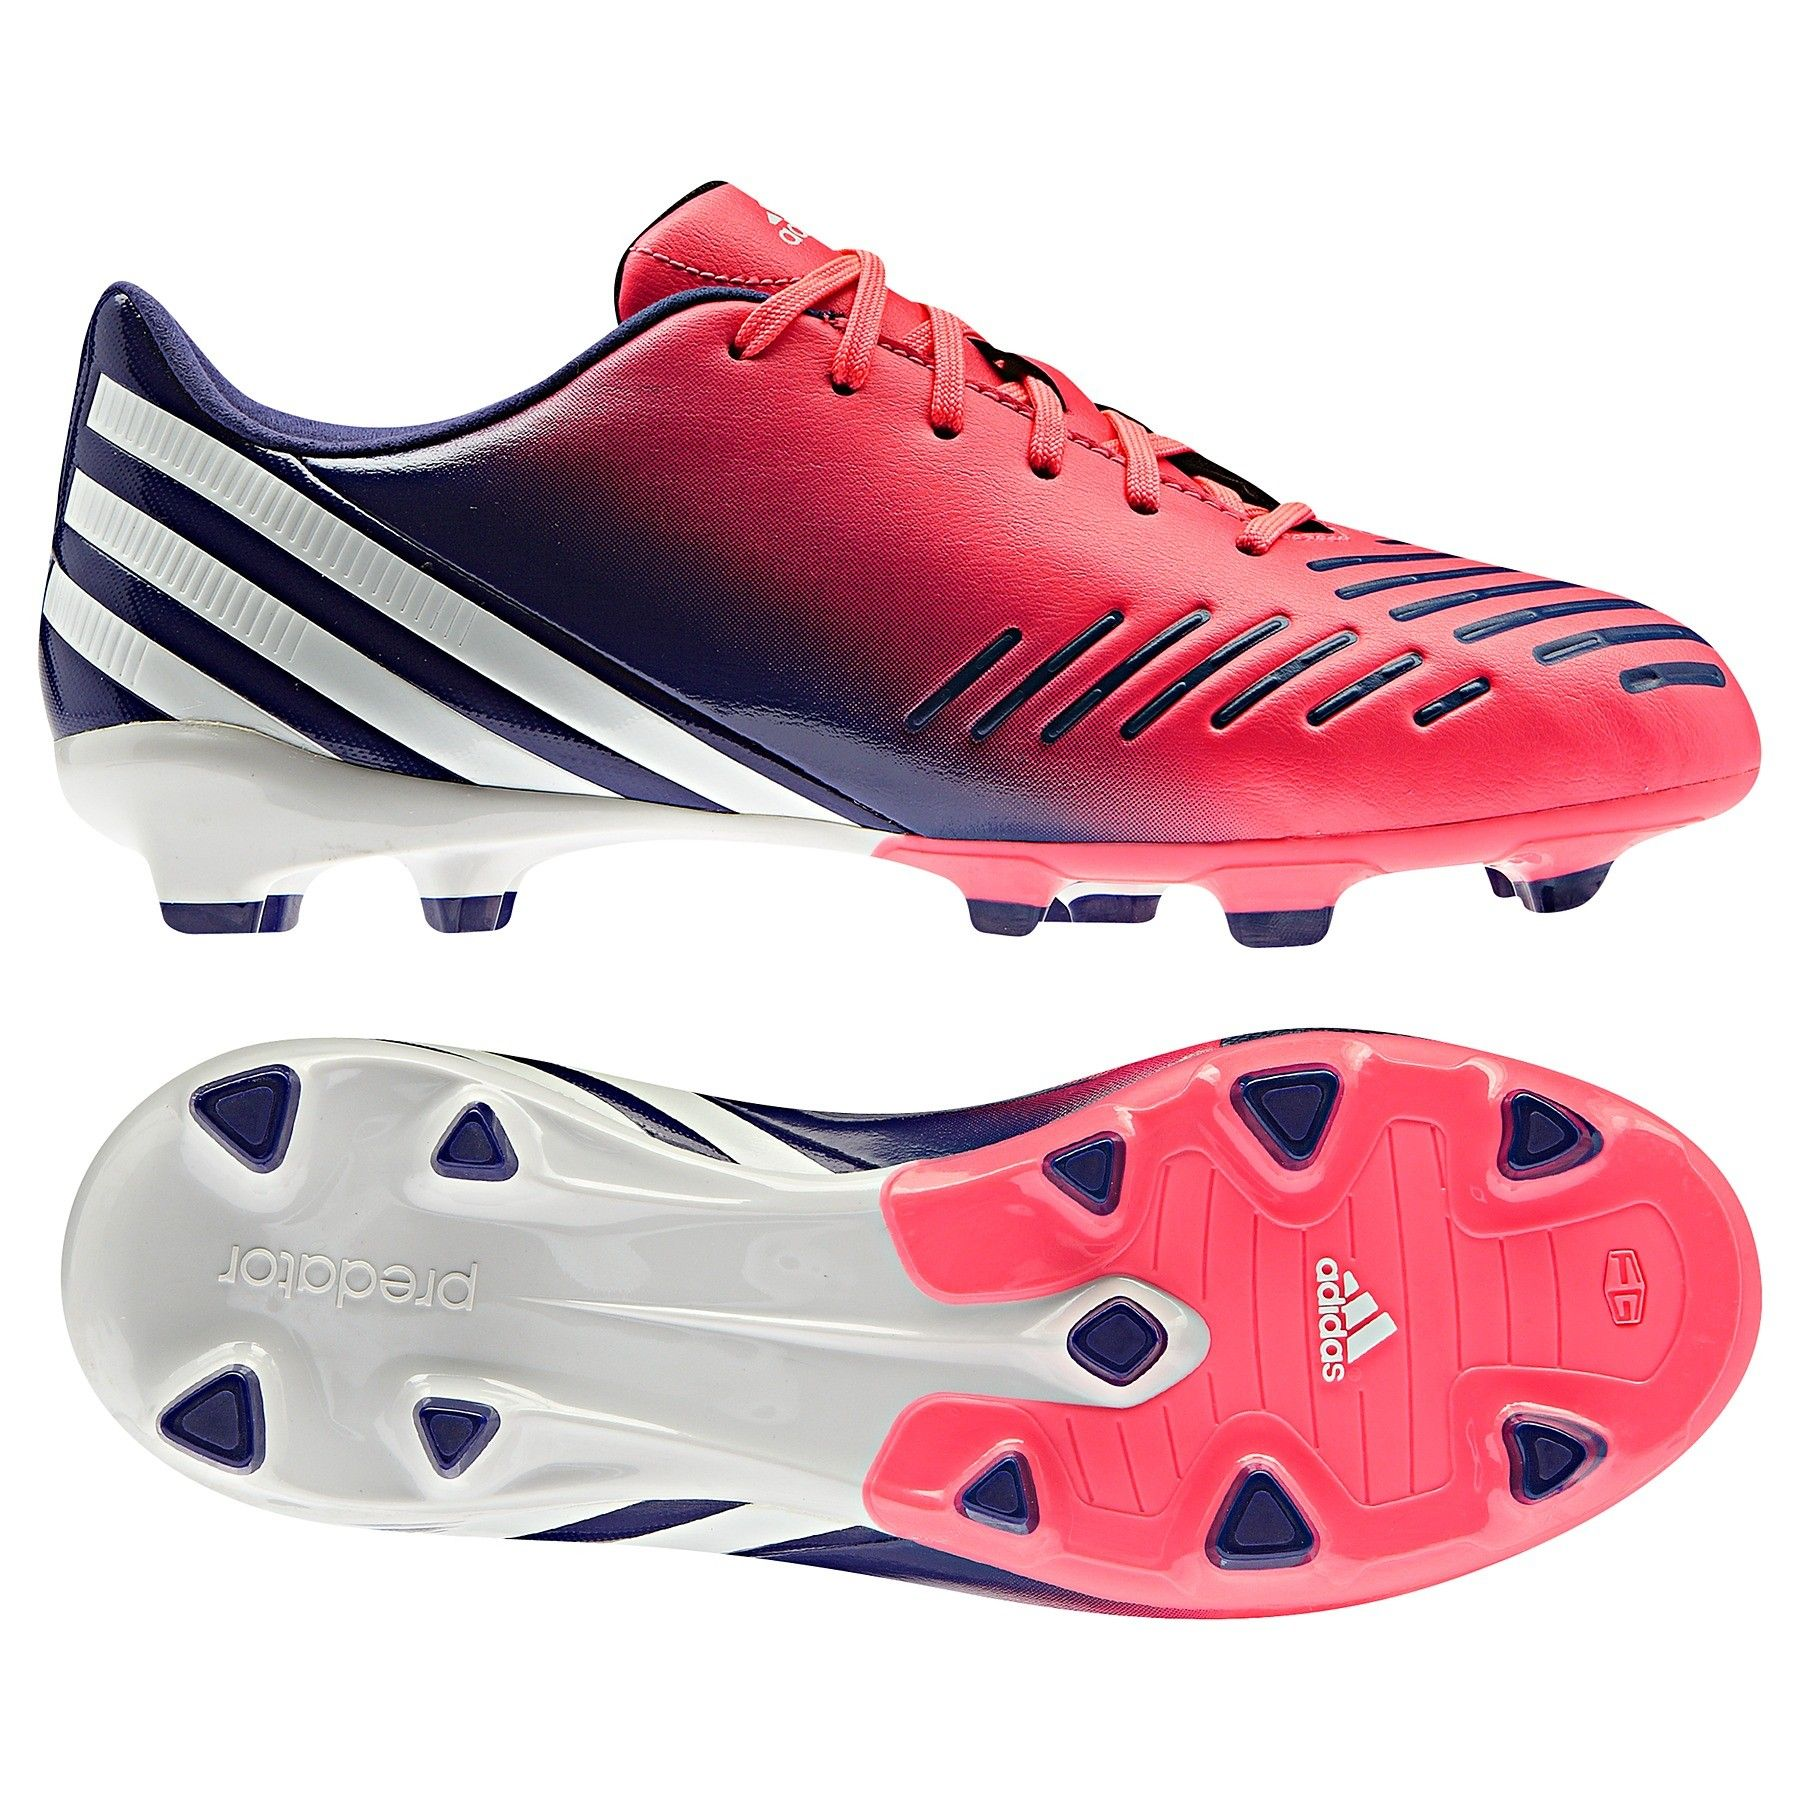 womens adidas soccer cleats - Google Search | my love....soccer ...